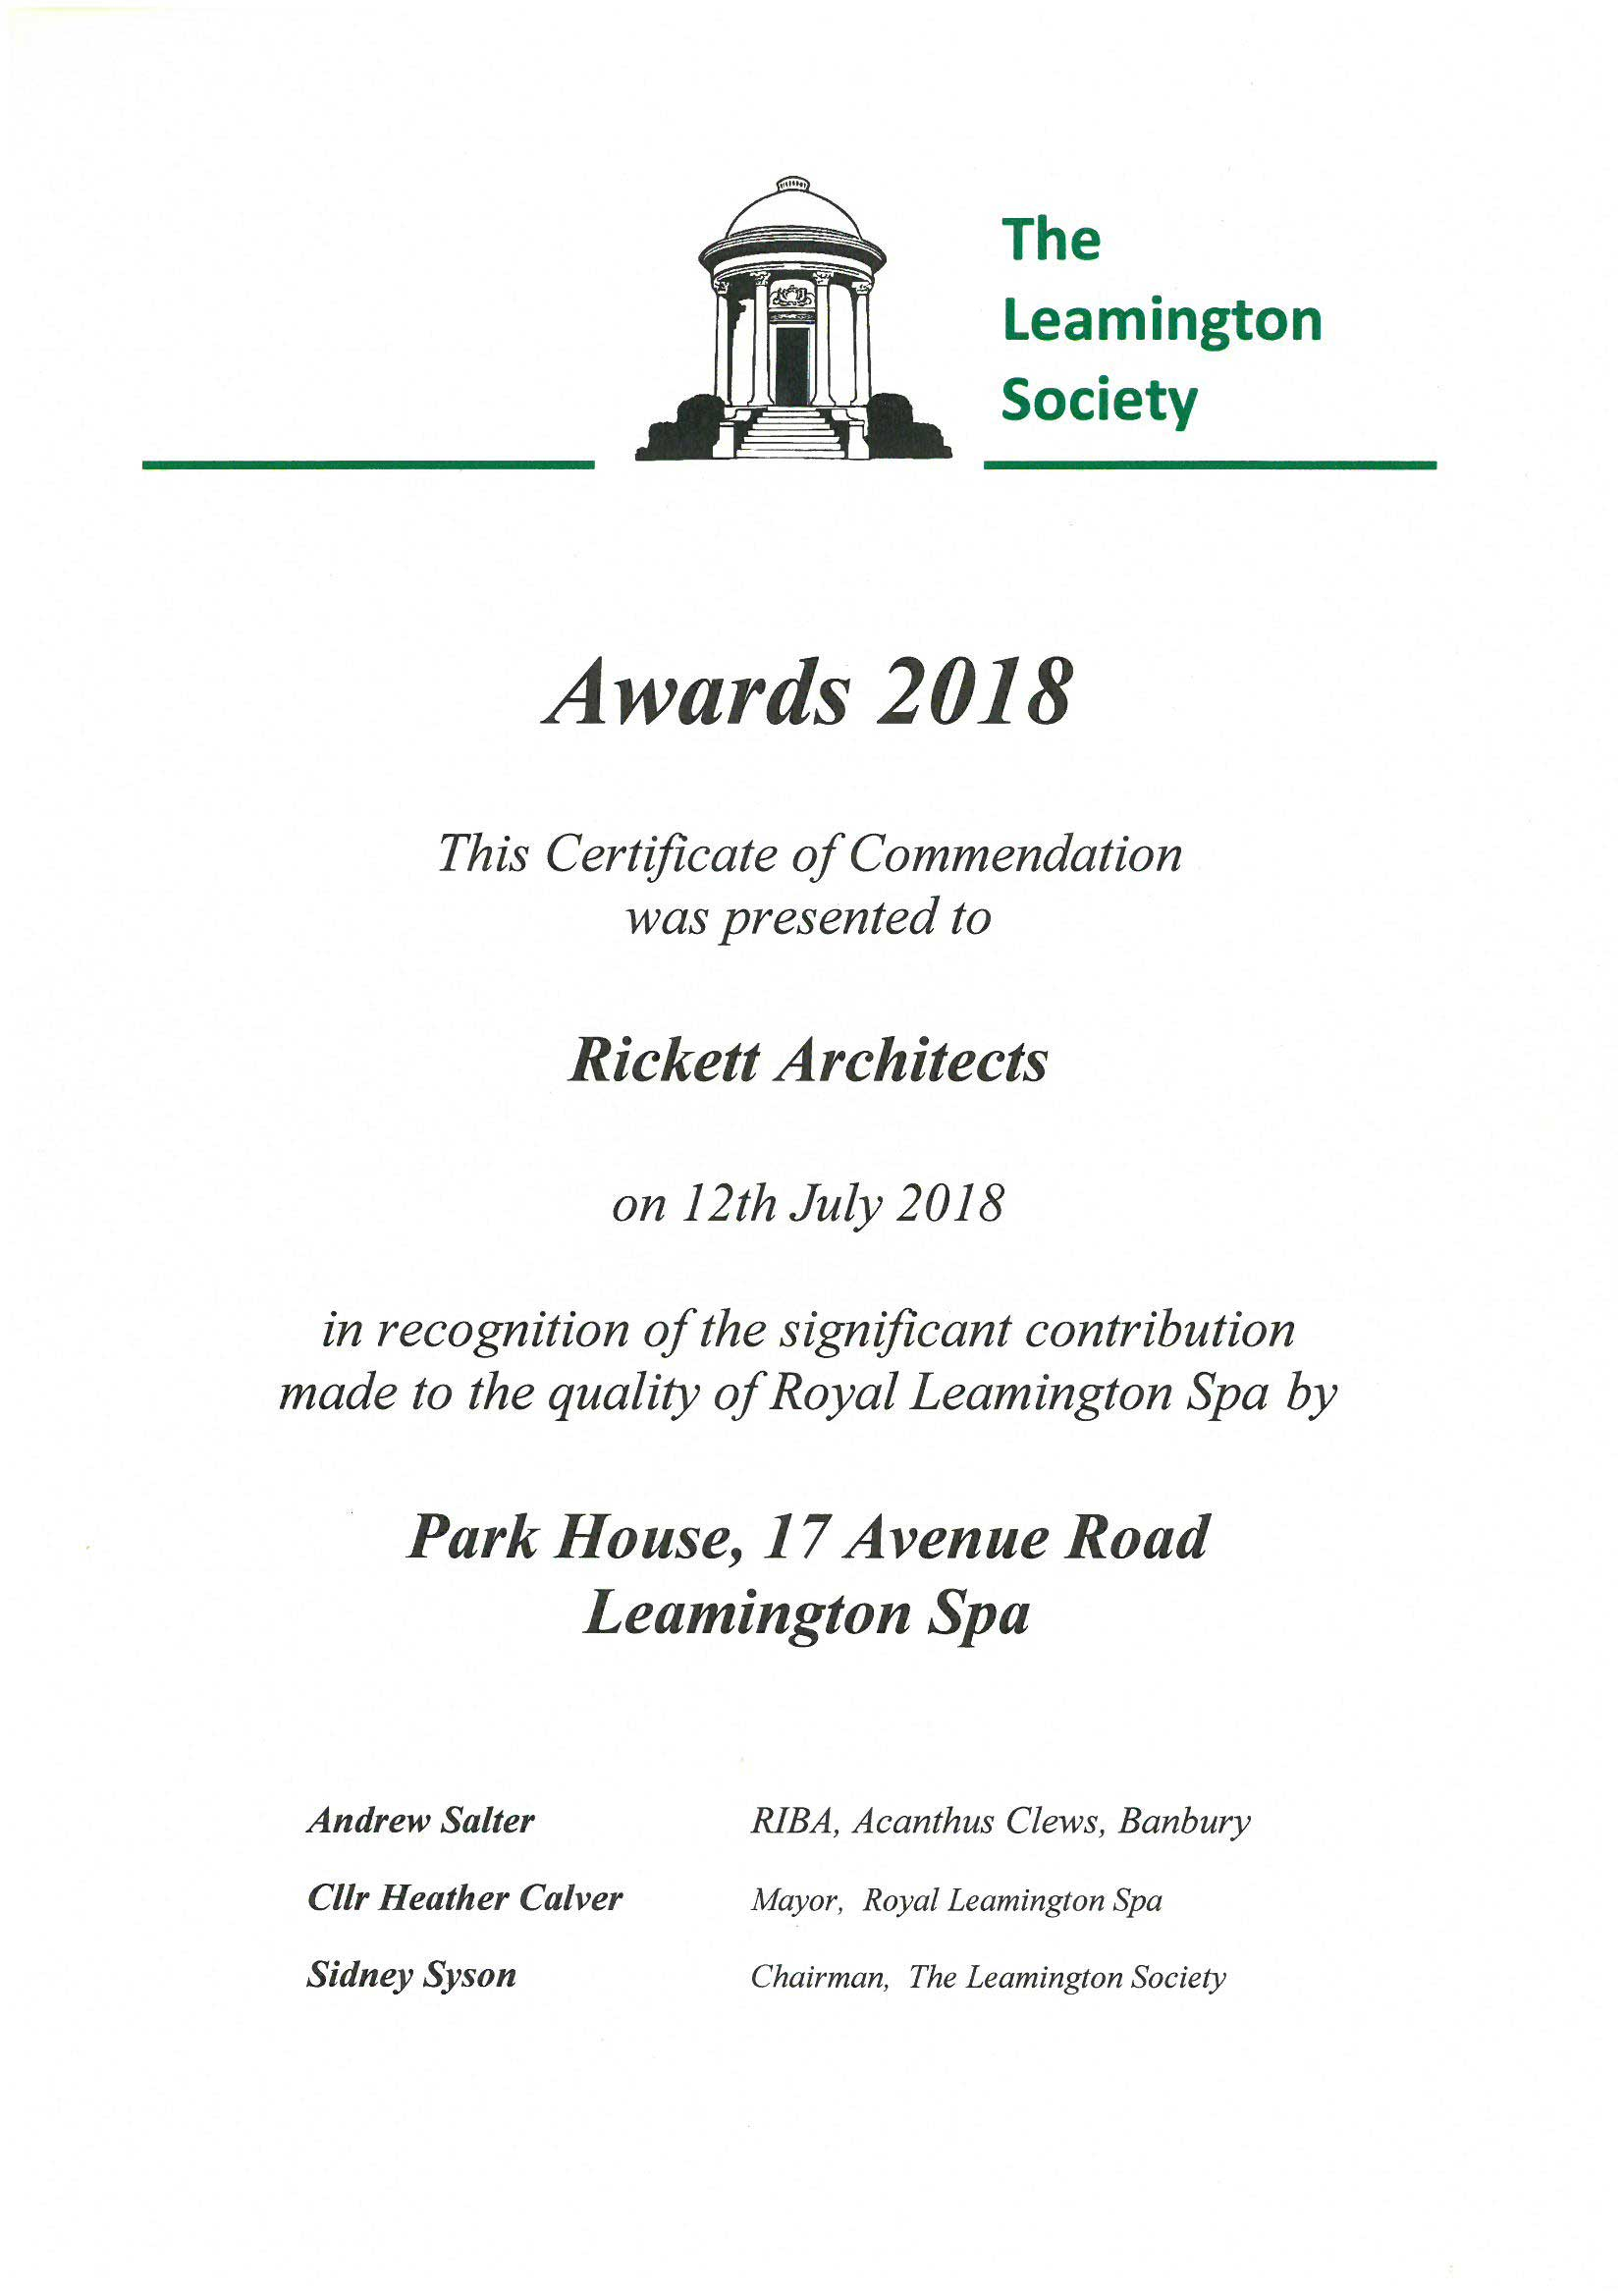 the_leamington_society_award_2018.jpg